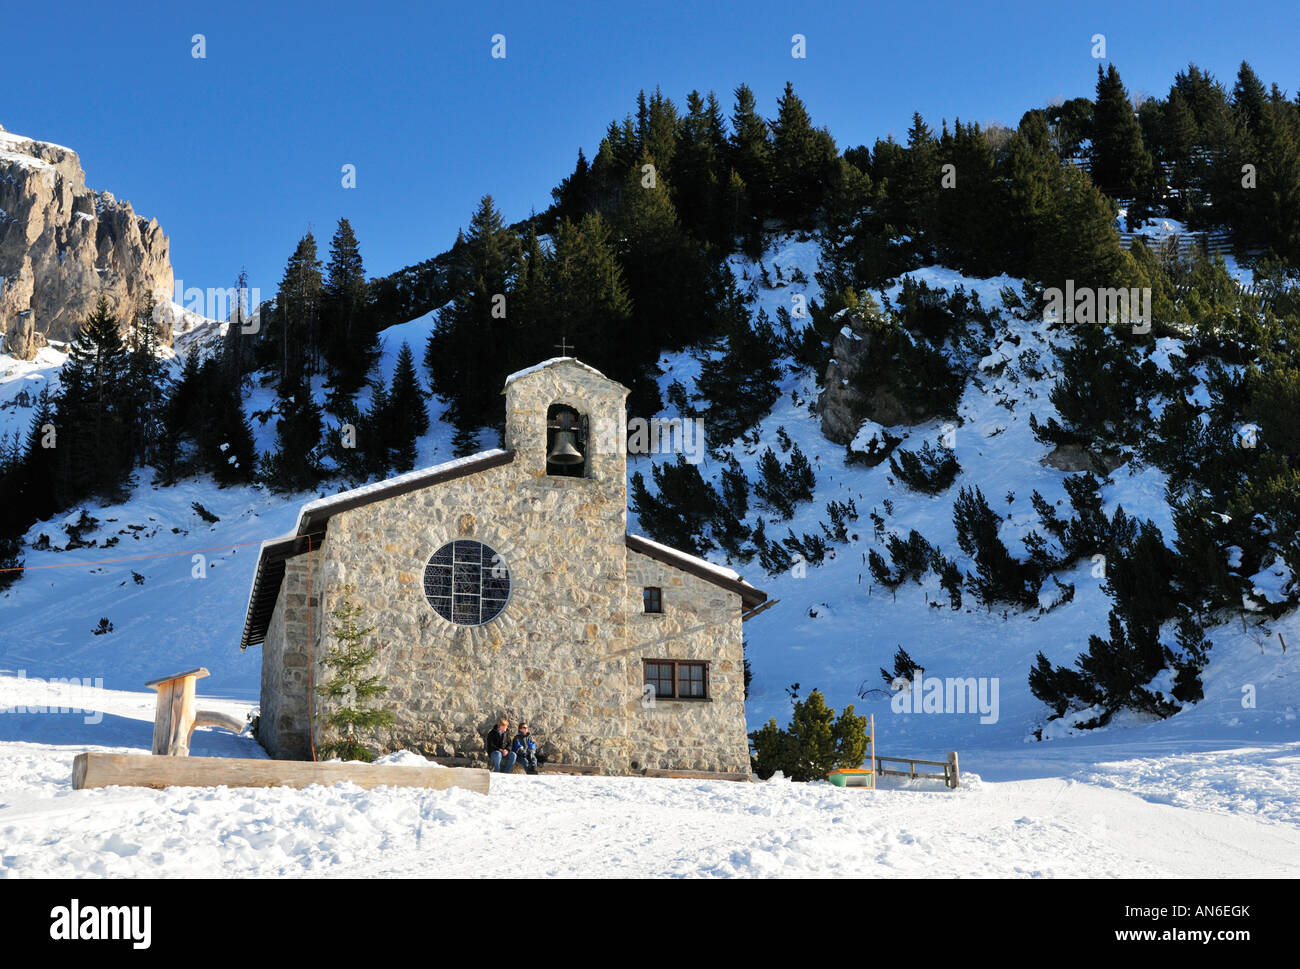 Winter in Malbun - Friedenskapelle with Sareis, Liechtenstein - Stock Image